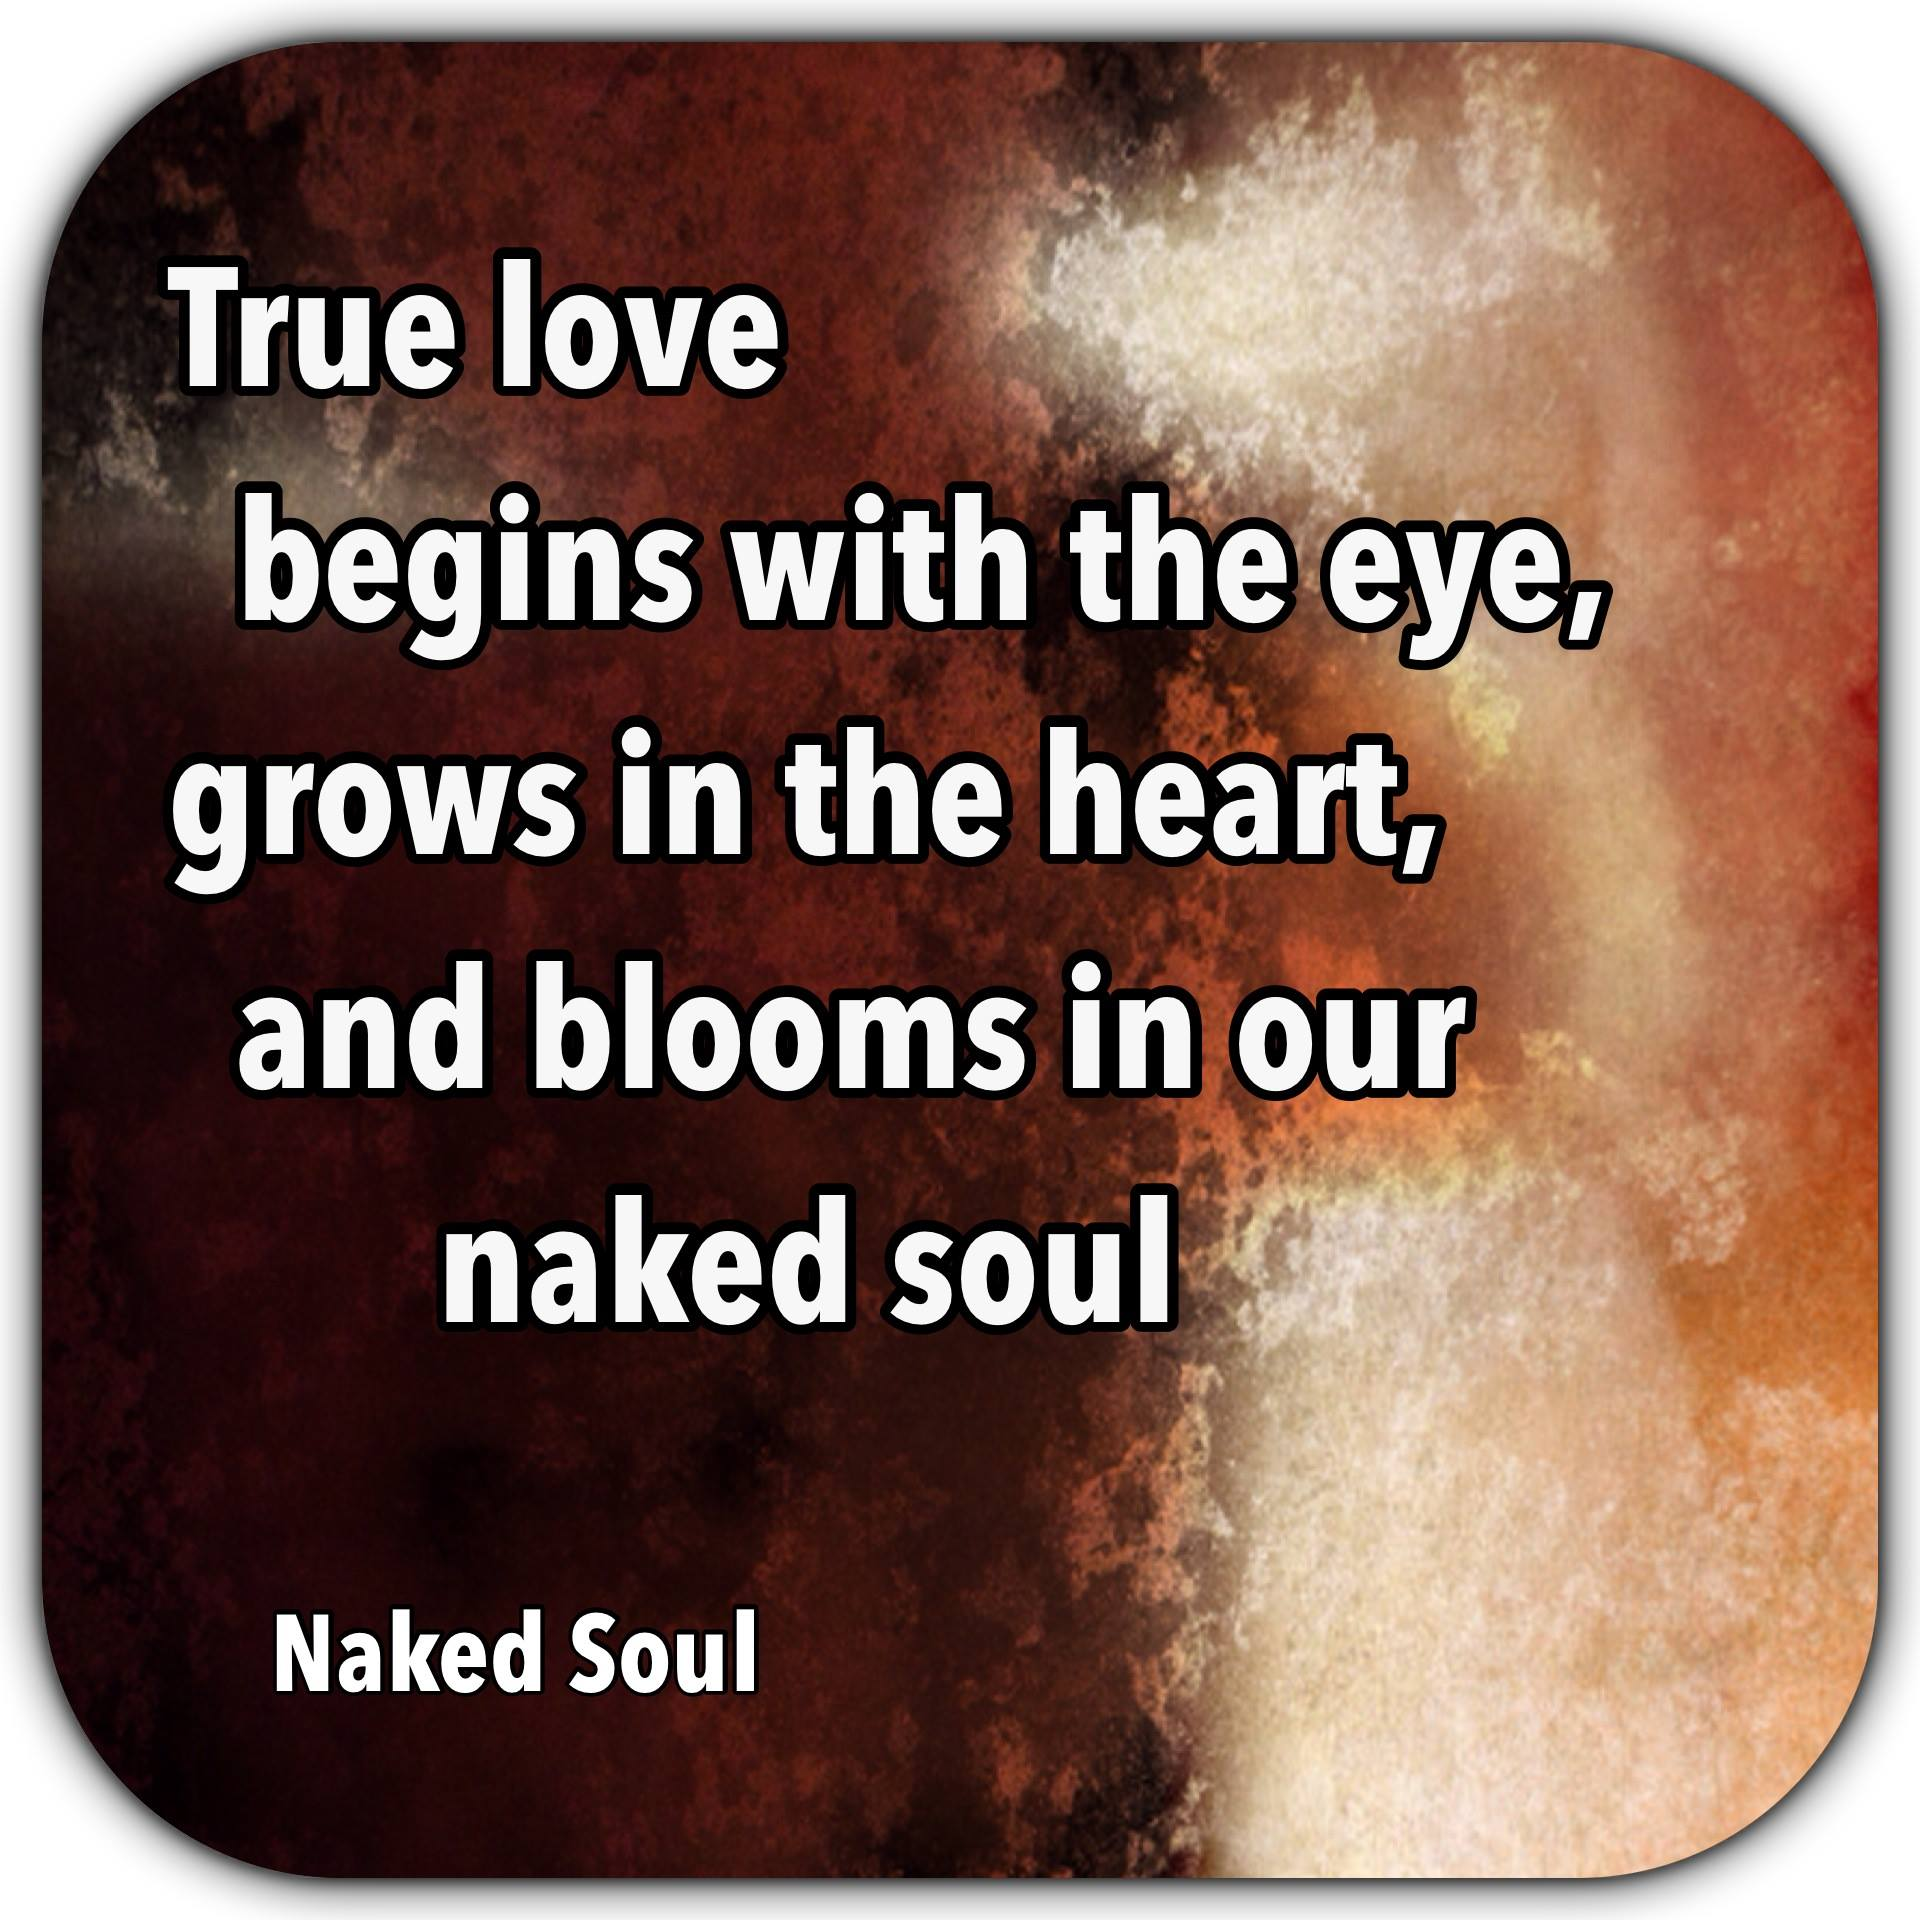 True love begins with the eye, grows in the heart, and blooms in our naked soul